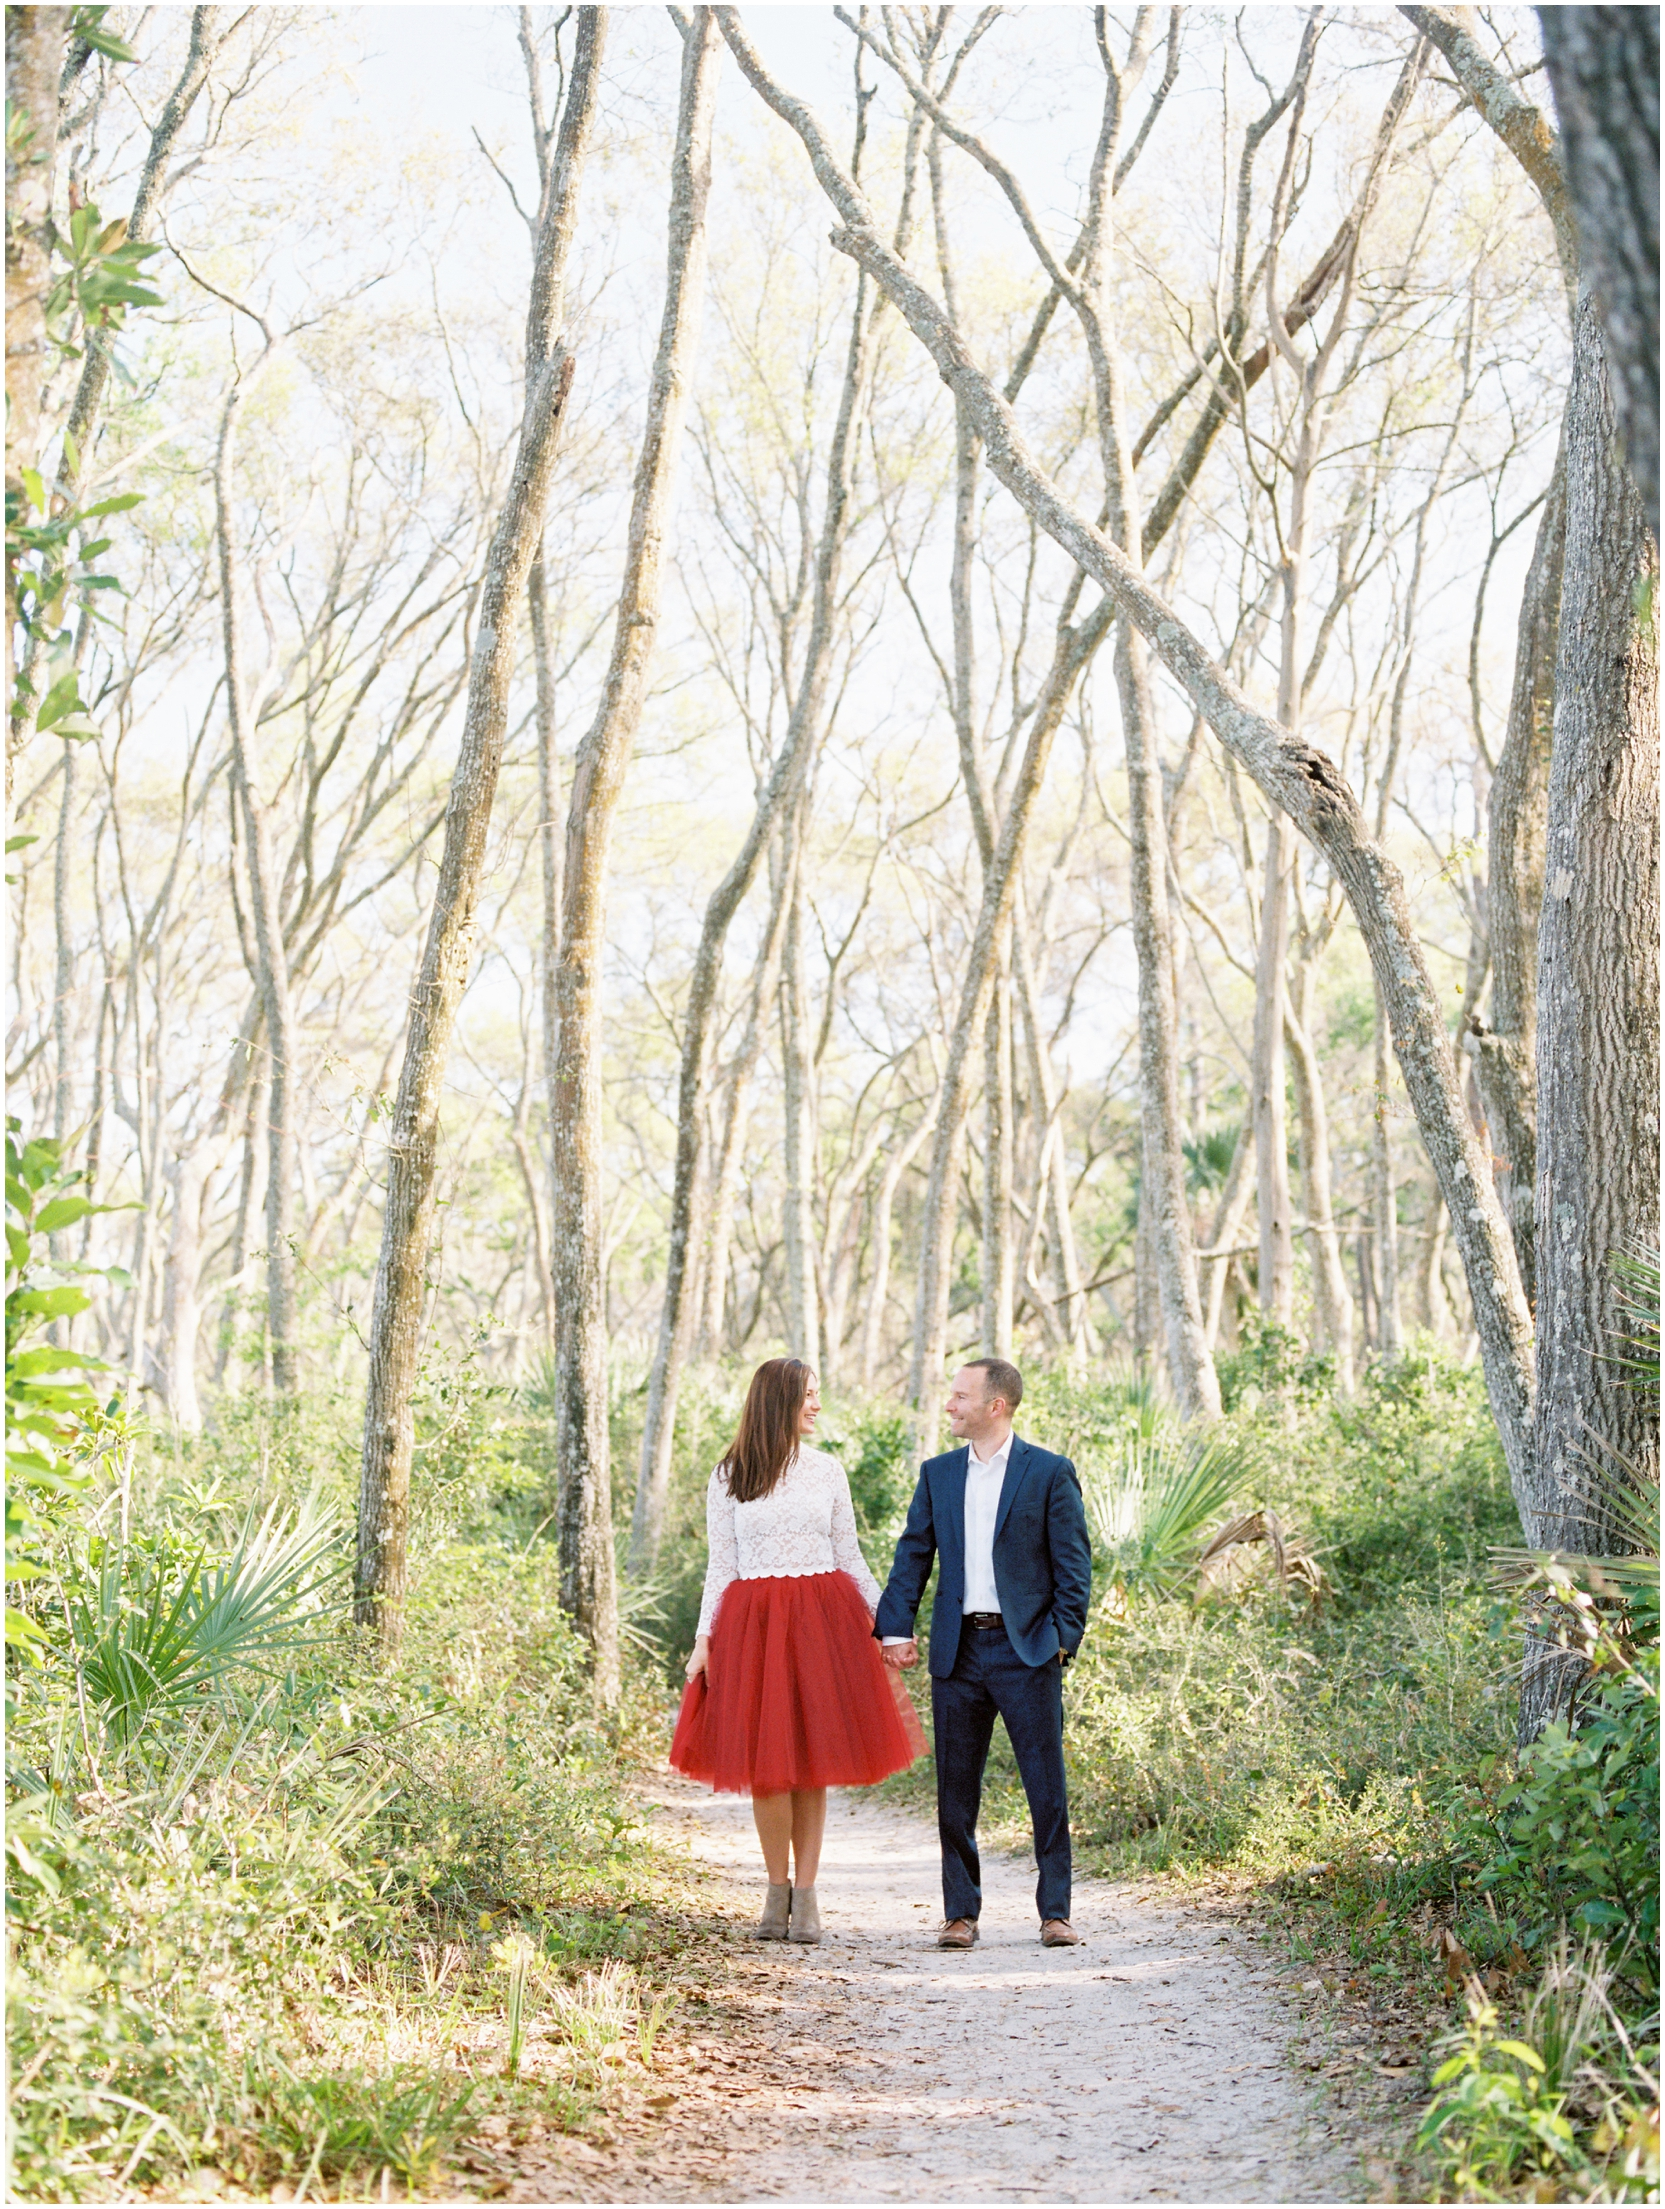 Lisa Silva Photography -Engagement Session at Big Talbot Island- Jacksonville and North East Florida Fine Art Film Photographer_0001.jpg